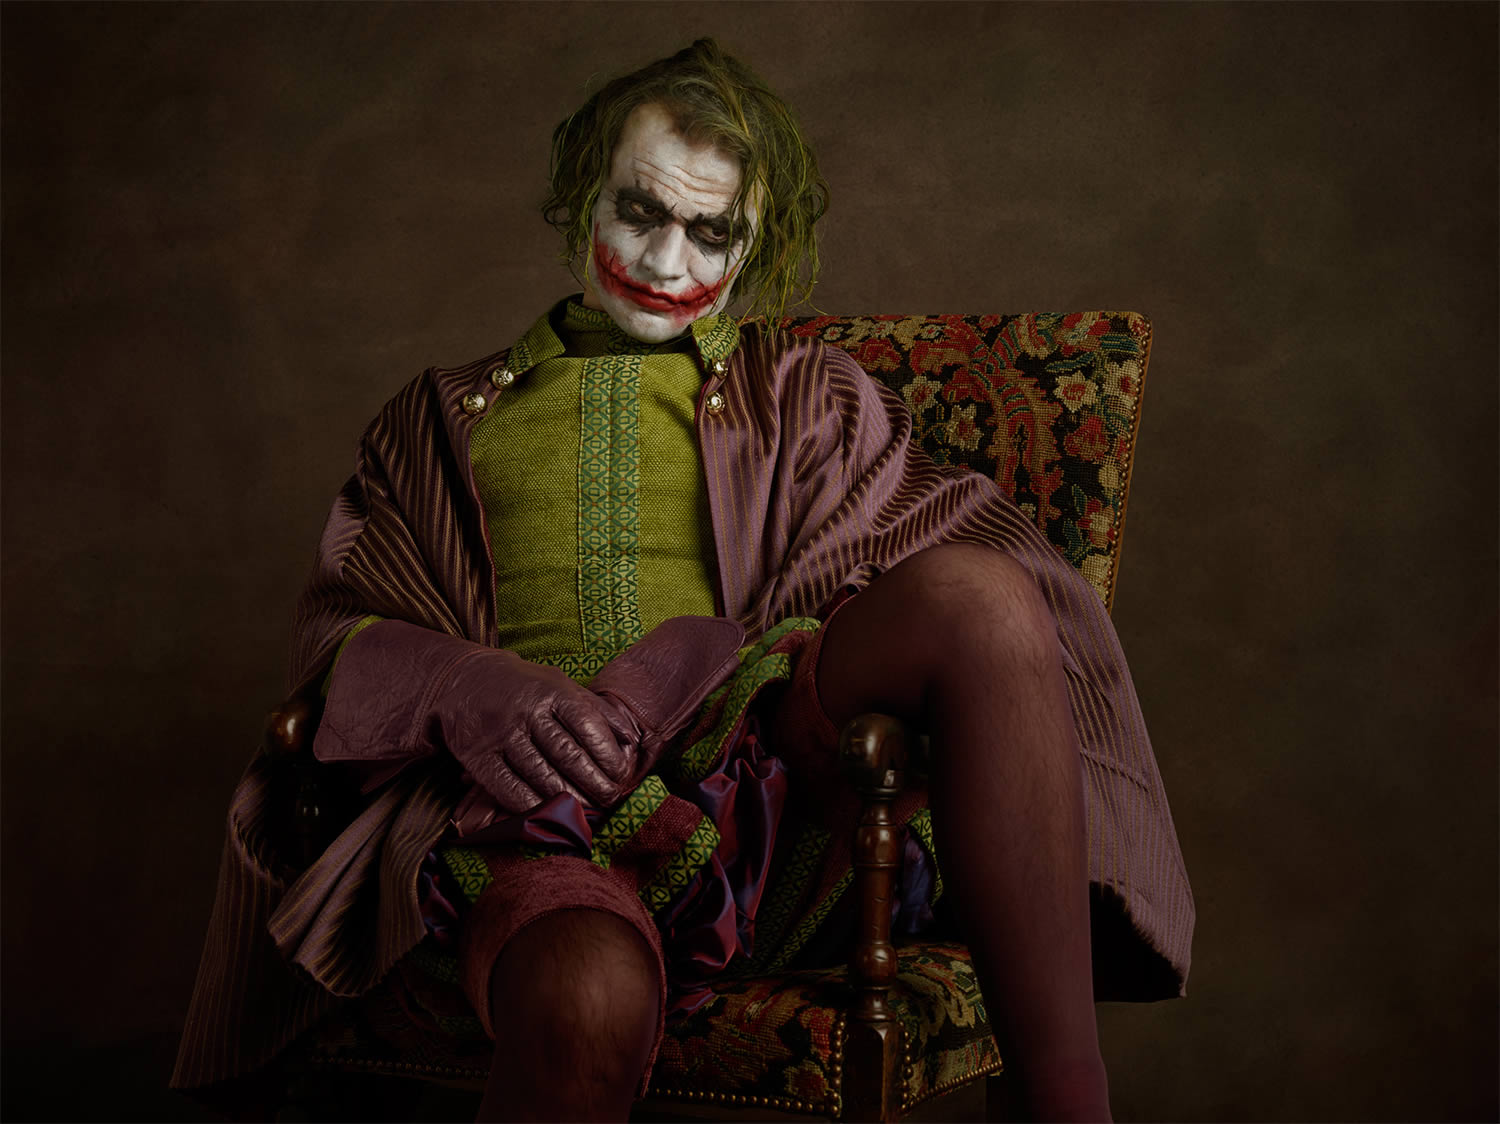 dark night joker, photo by sasha goldberger